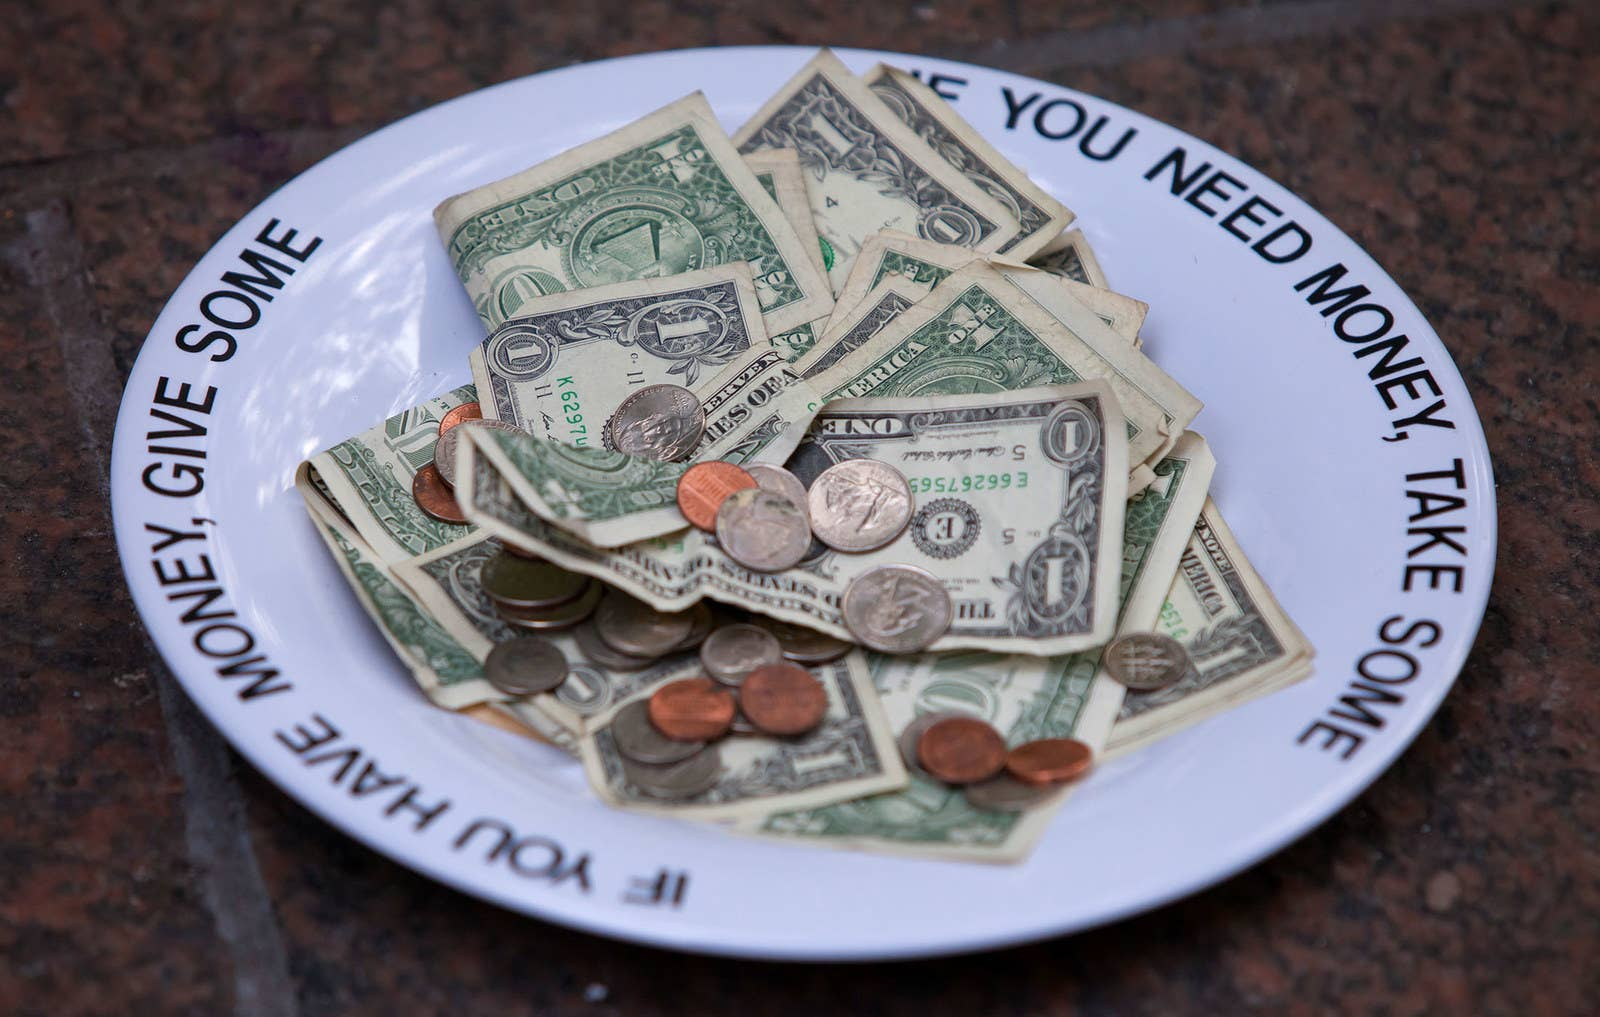 A donation plate of money is left for whoever needs it in Zuccotti Park on Sept. 27, 2011.